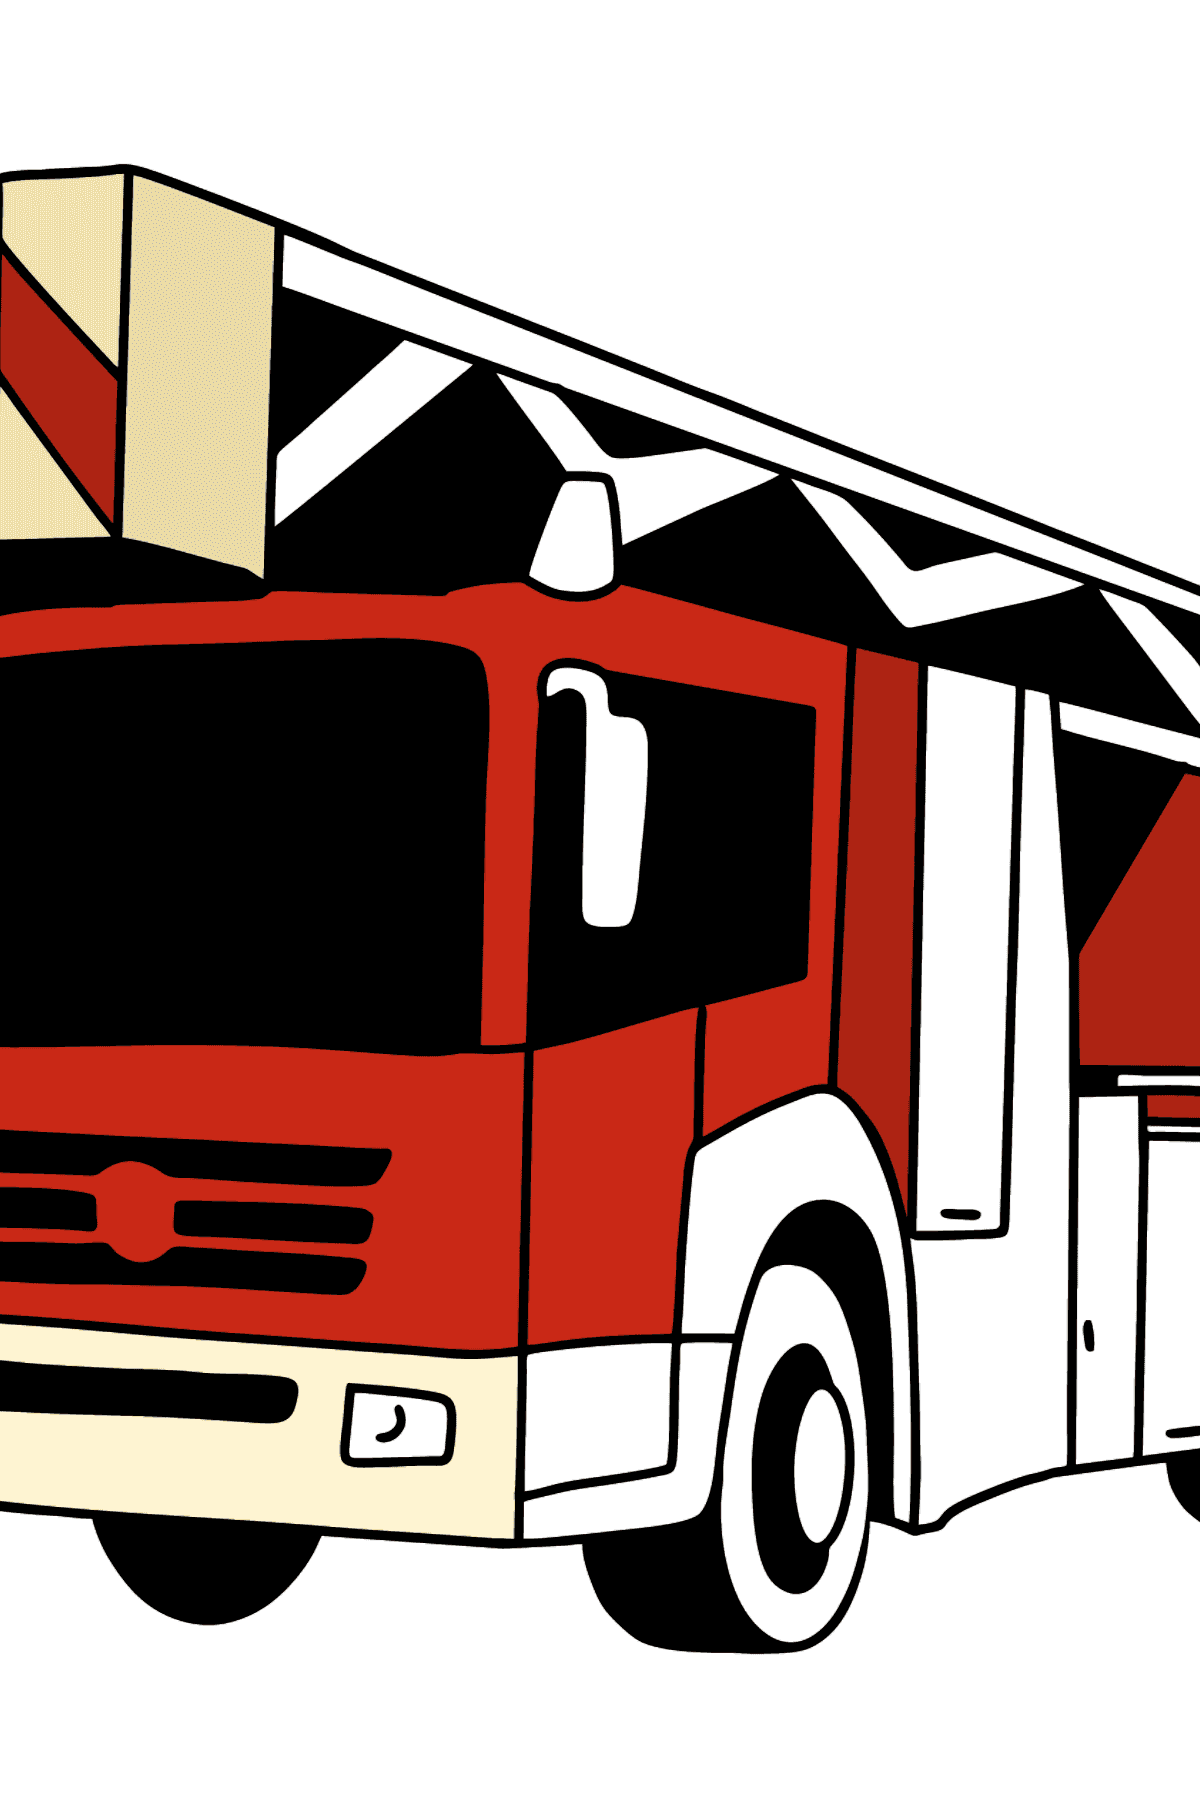 Fire Truck in Germany coloring page - Coloring Pages for Kids